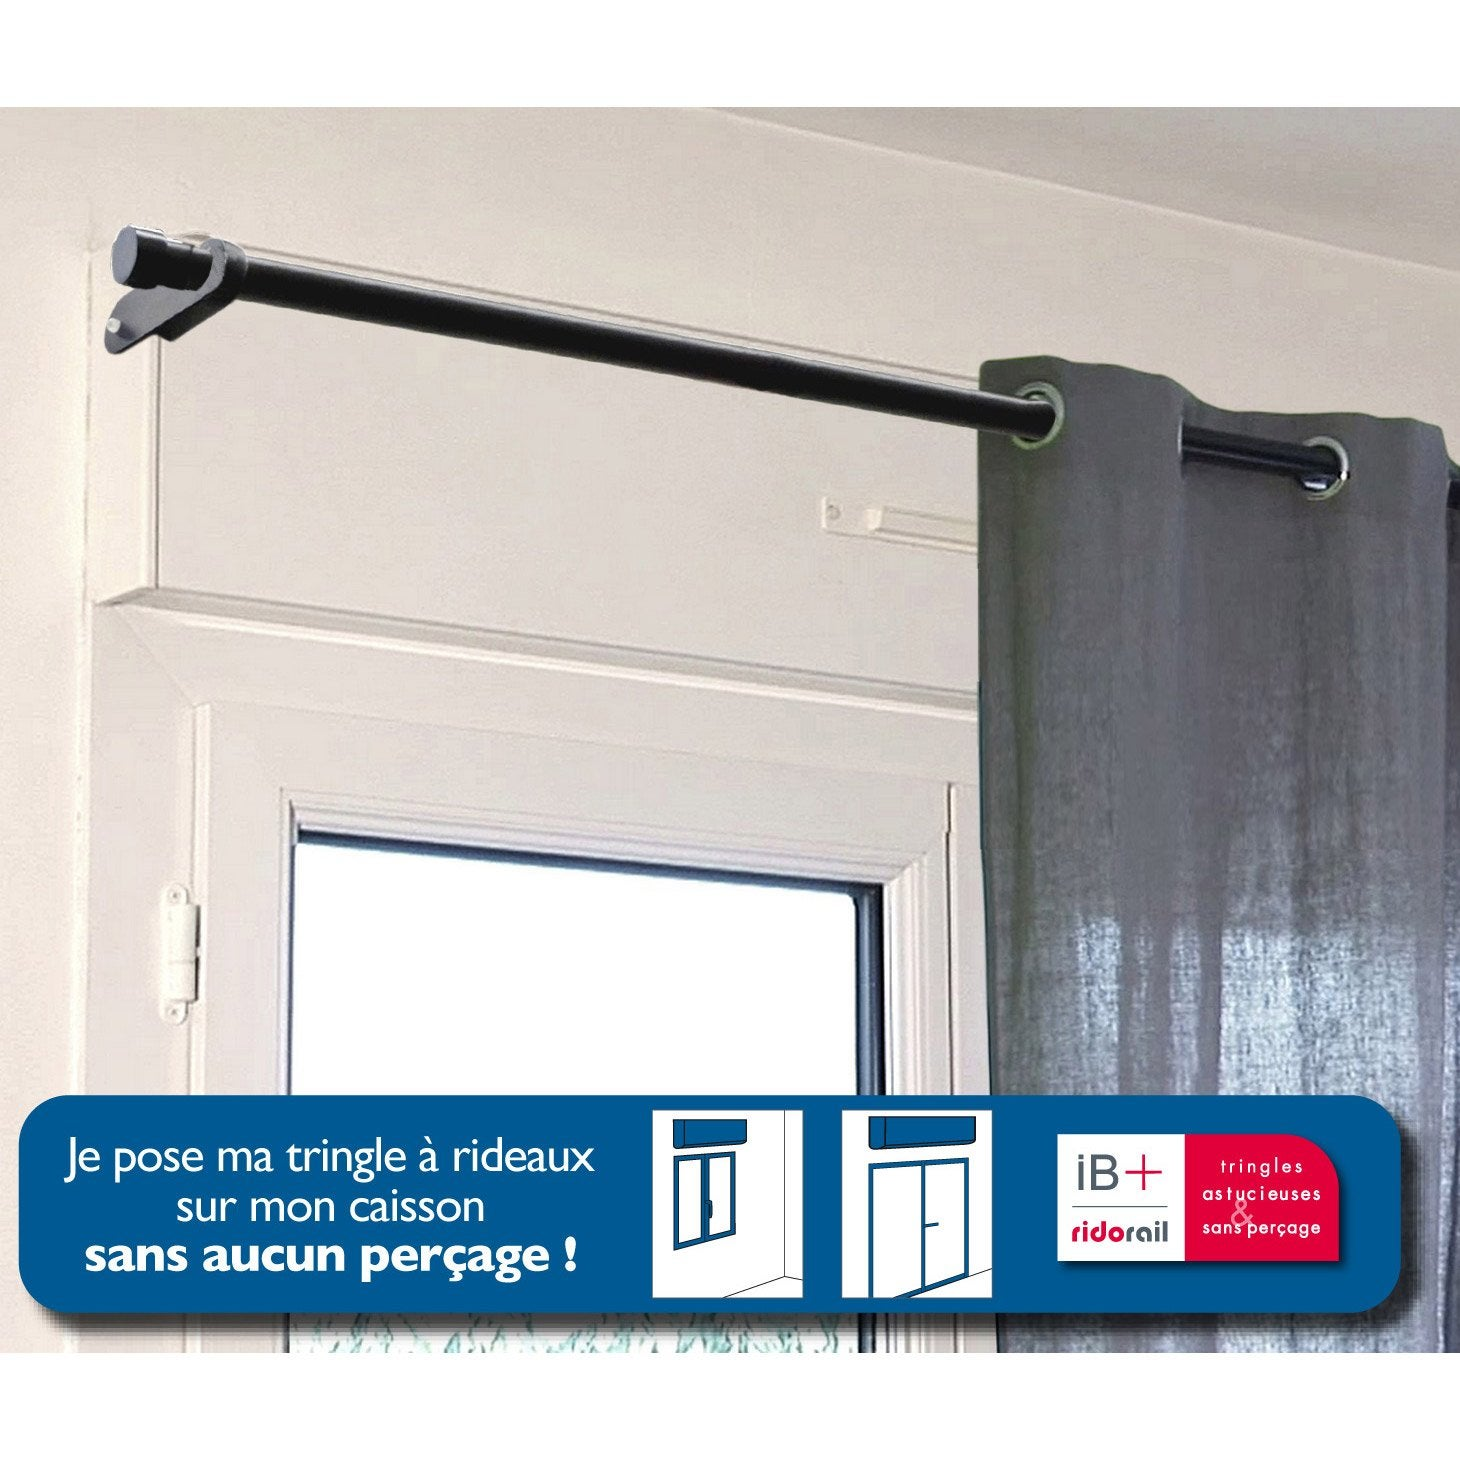 Support sans per§age tringle   rideau Ib 25 mm noir mat IB